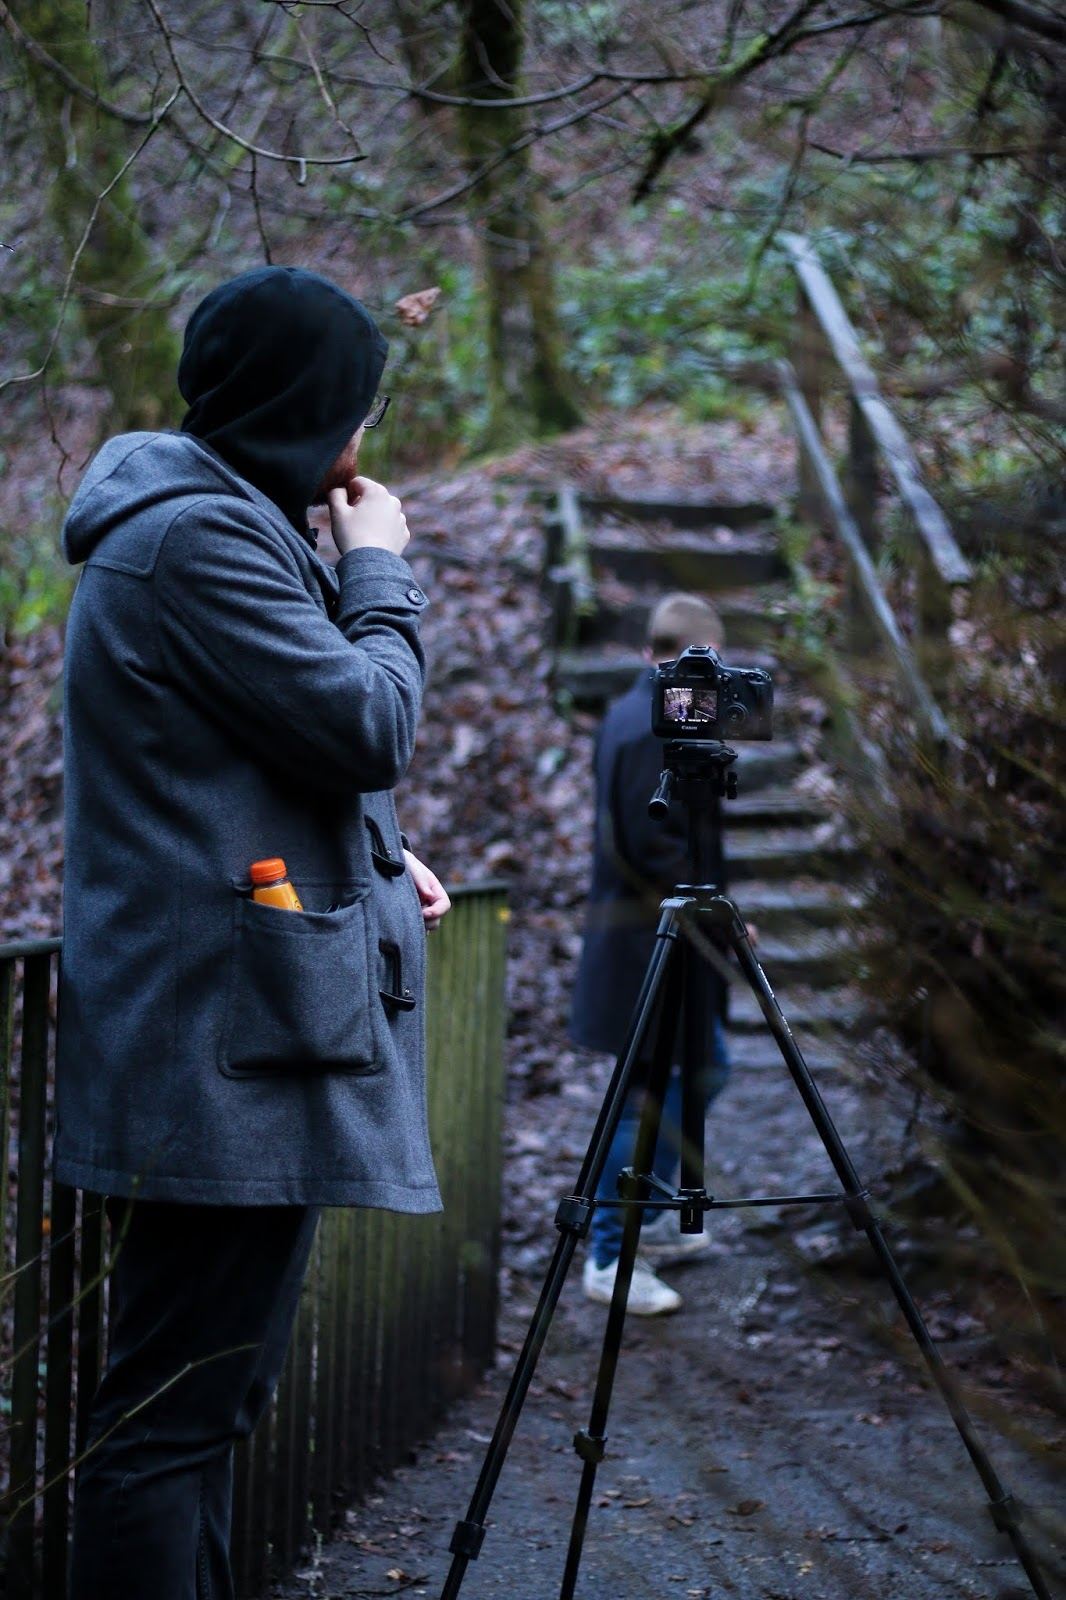 two men standing, one behind a camera filming the other walk down some stairs in Cumberland glen